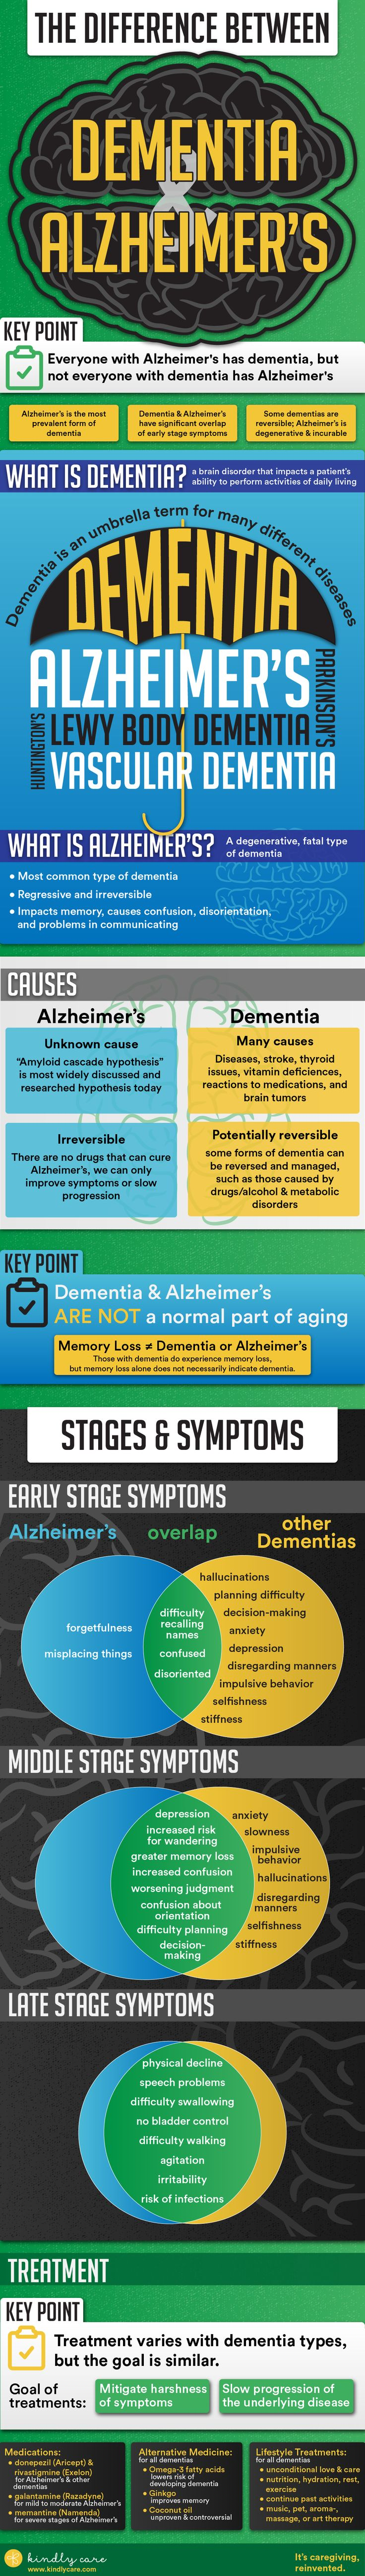 There are stark differences between Alzheimer's and dementia. Whereas a patient with dementia need not have Alzheimer's, a patient with Alzheimer's is by definition with dementia, and Alzheimer's is notably the most common of more than one hundred dementias.  #infographic #alzheimers #dementia #elderlycare #caregiving #aging #mentalhealth #caretaking #healthyaging #health #kindlycare